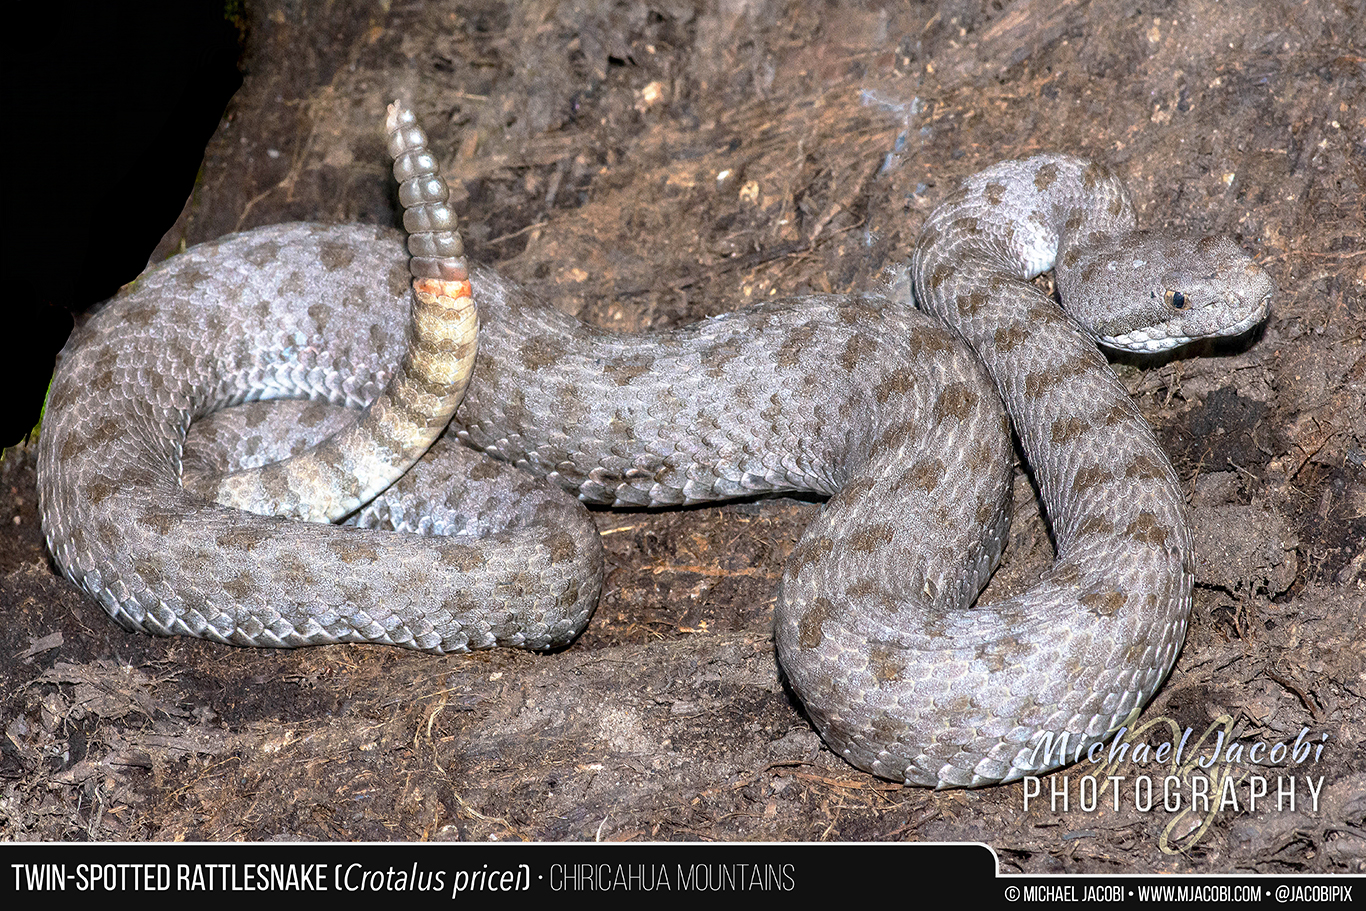 Crotalus_pricei_graphic_1366px.jpg